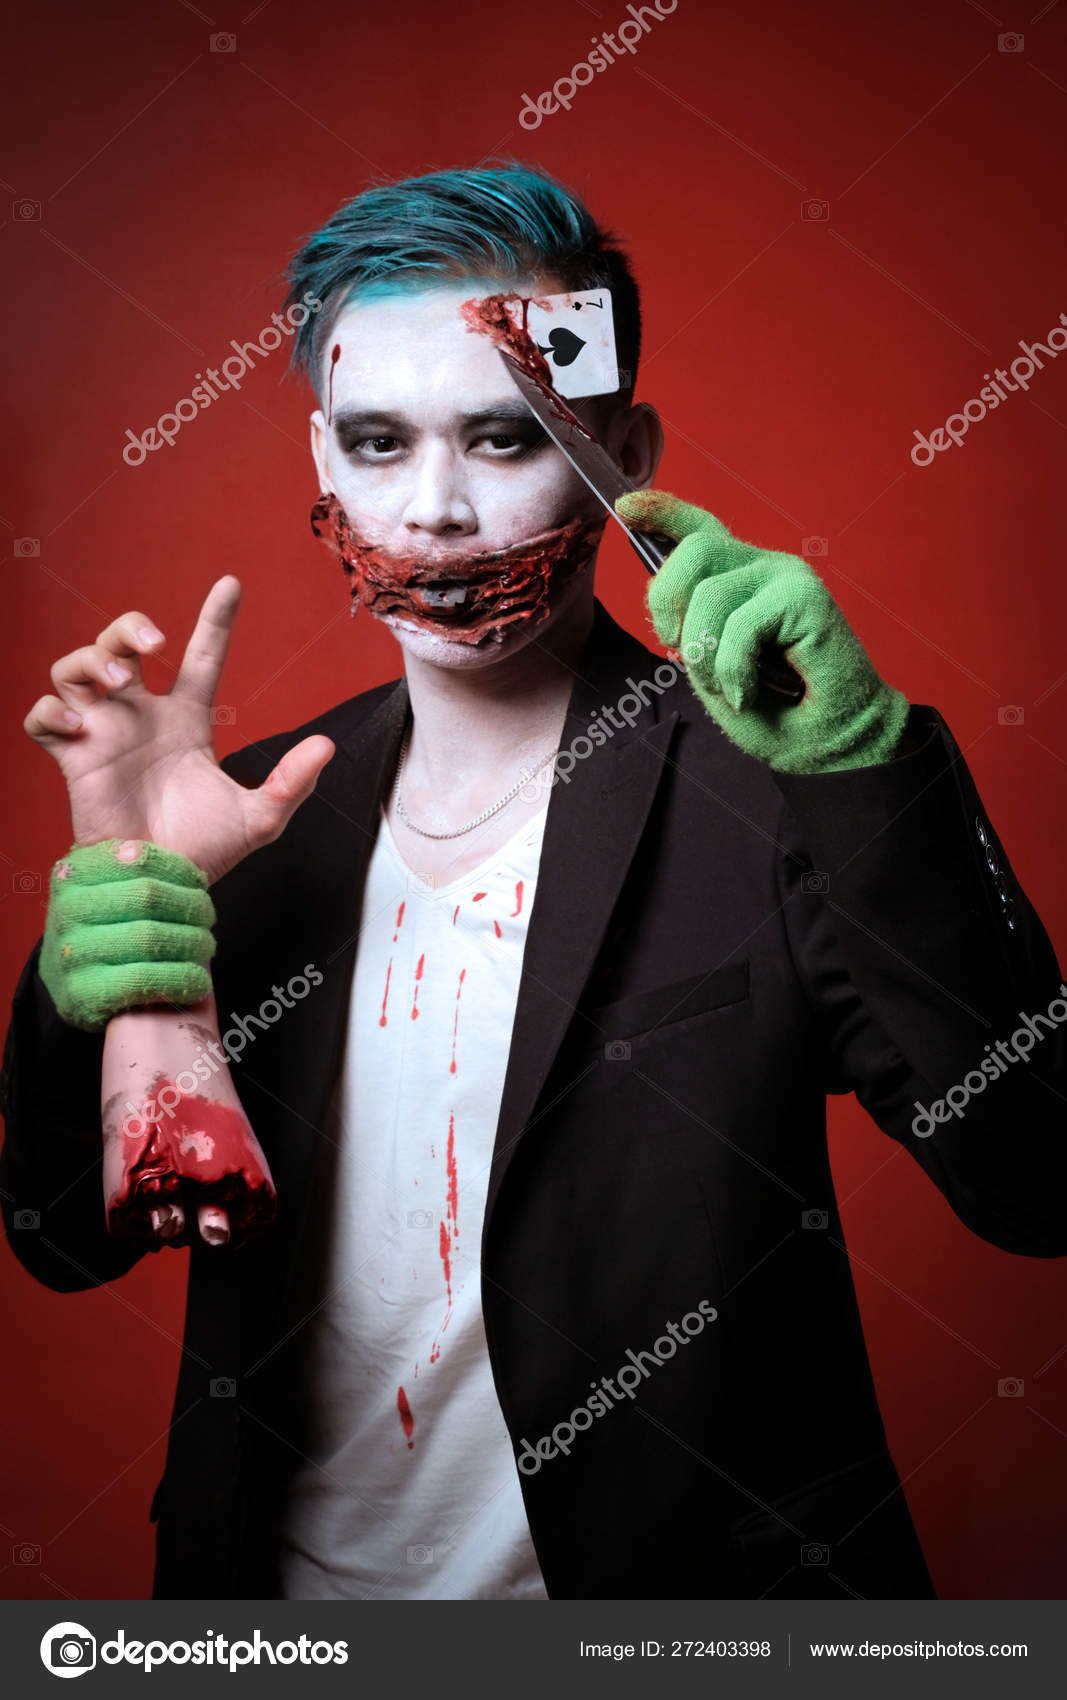 Halloween Makeup Looks For Guys.Scary Clown Makeup For Guys Halloween Makeup The Guy In The Suit